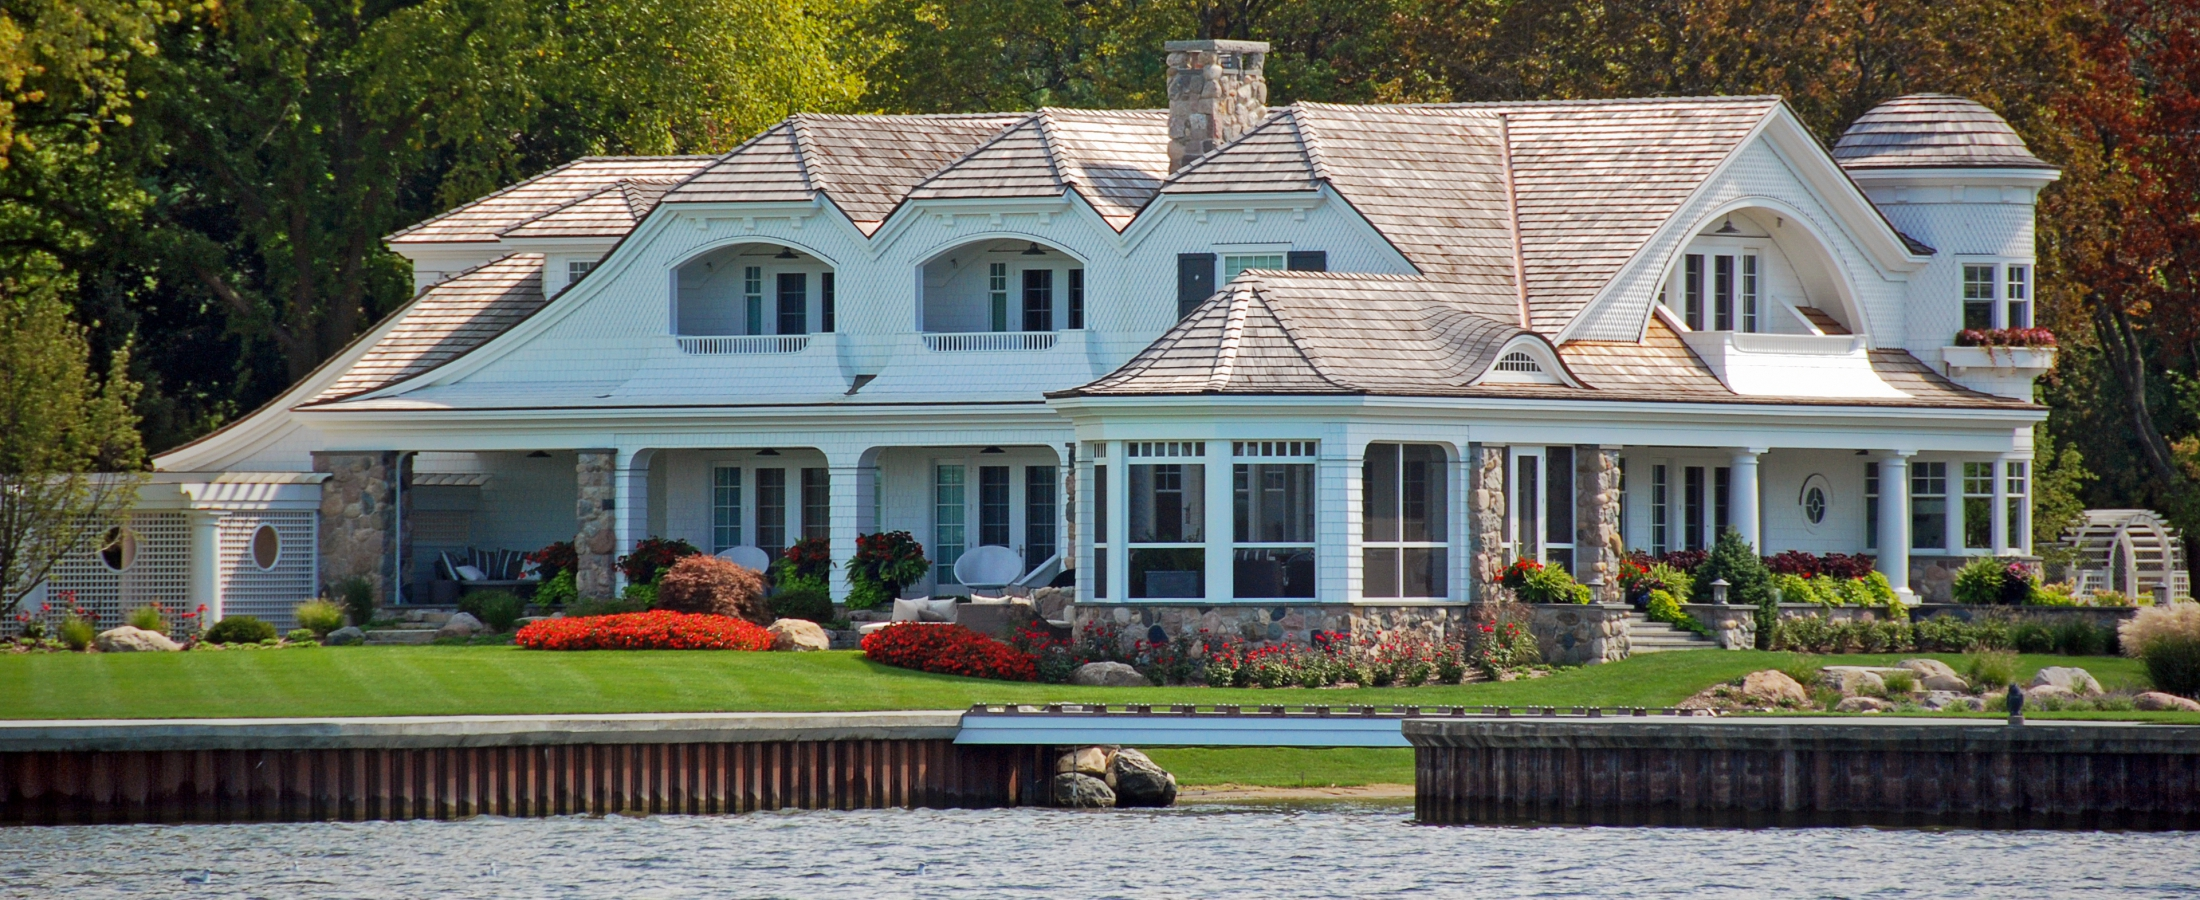 The most expensive homes in lake minnetonka minnesota for Most expensive homes in minnesota